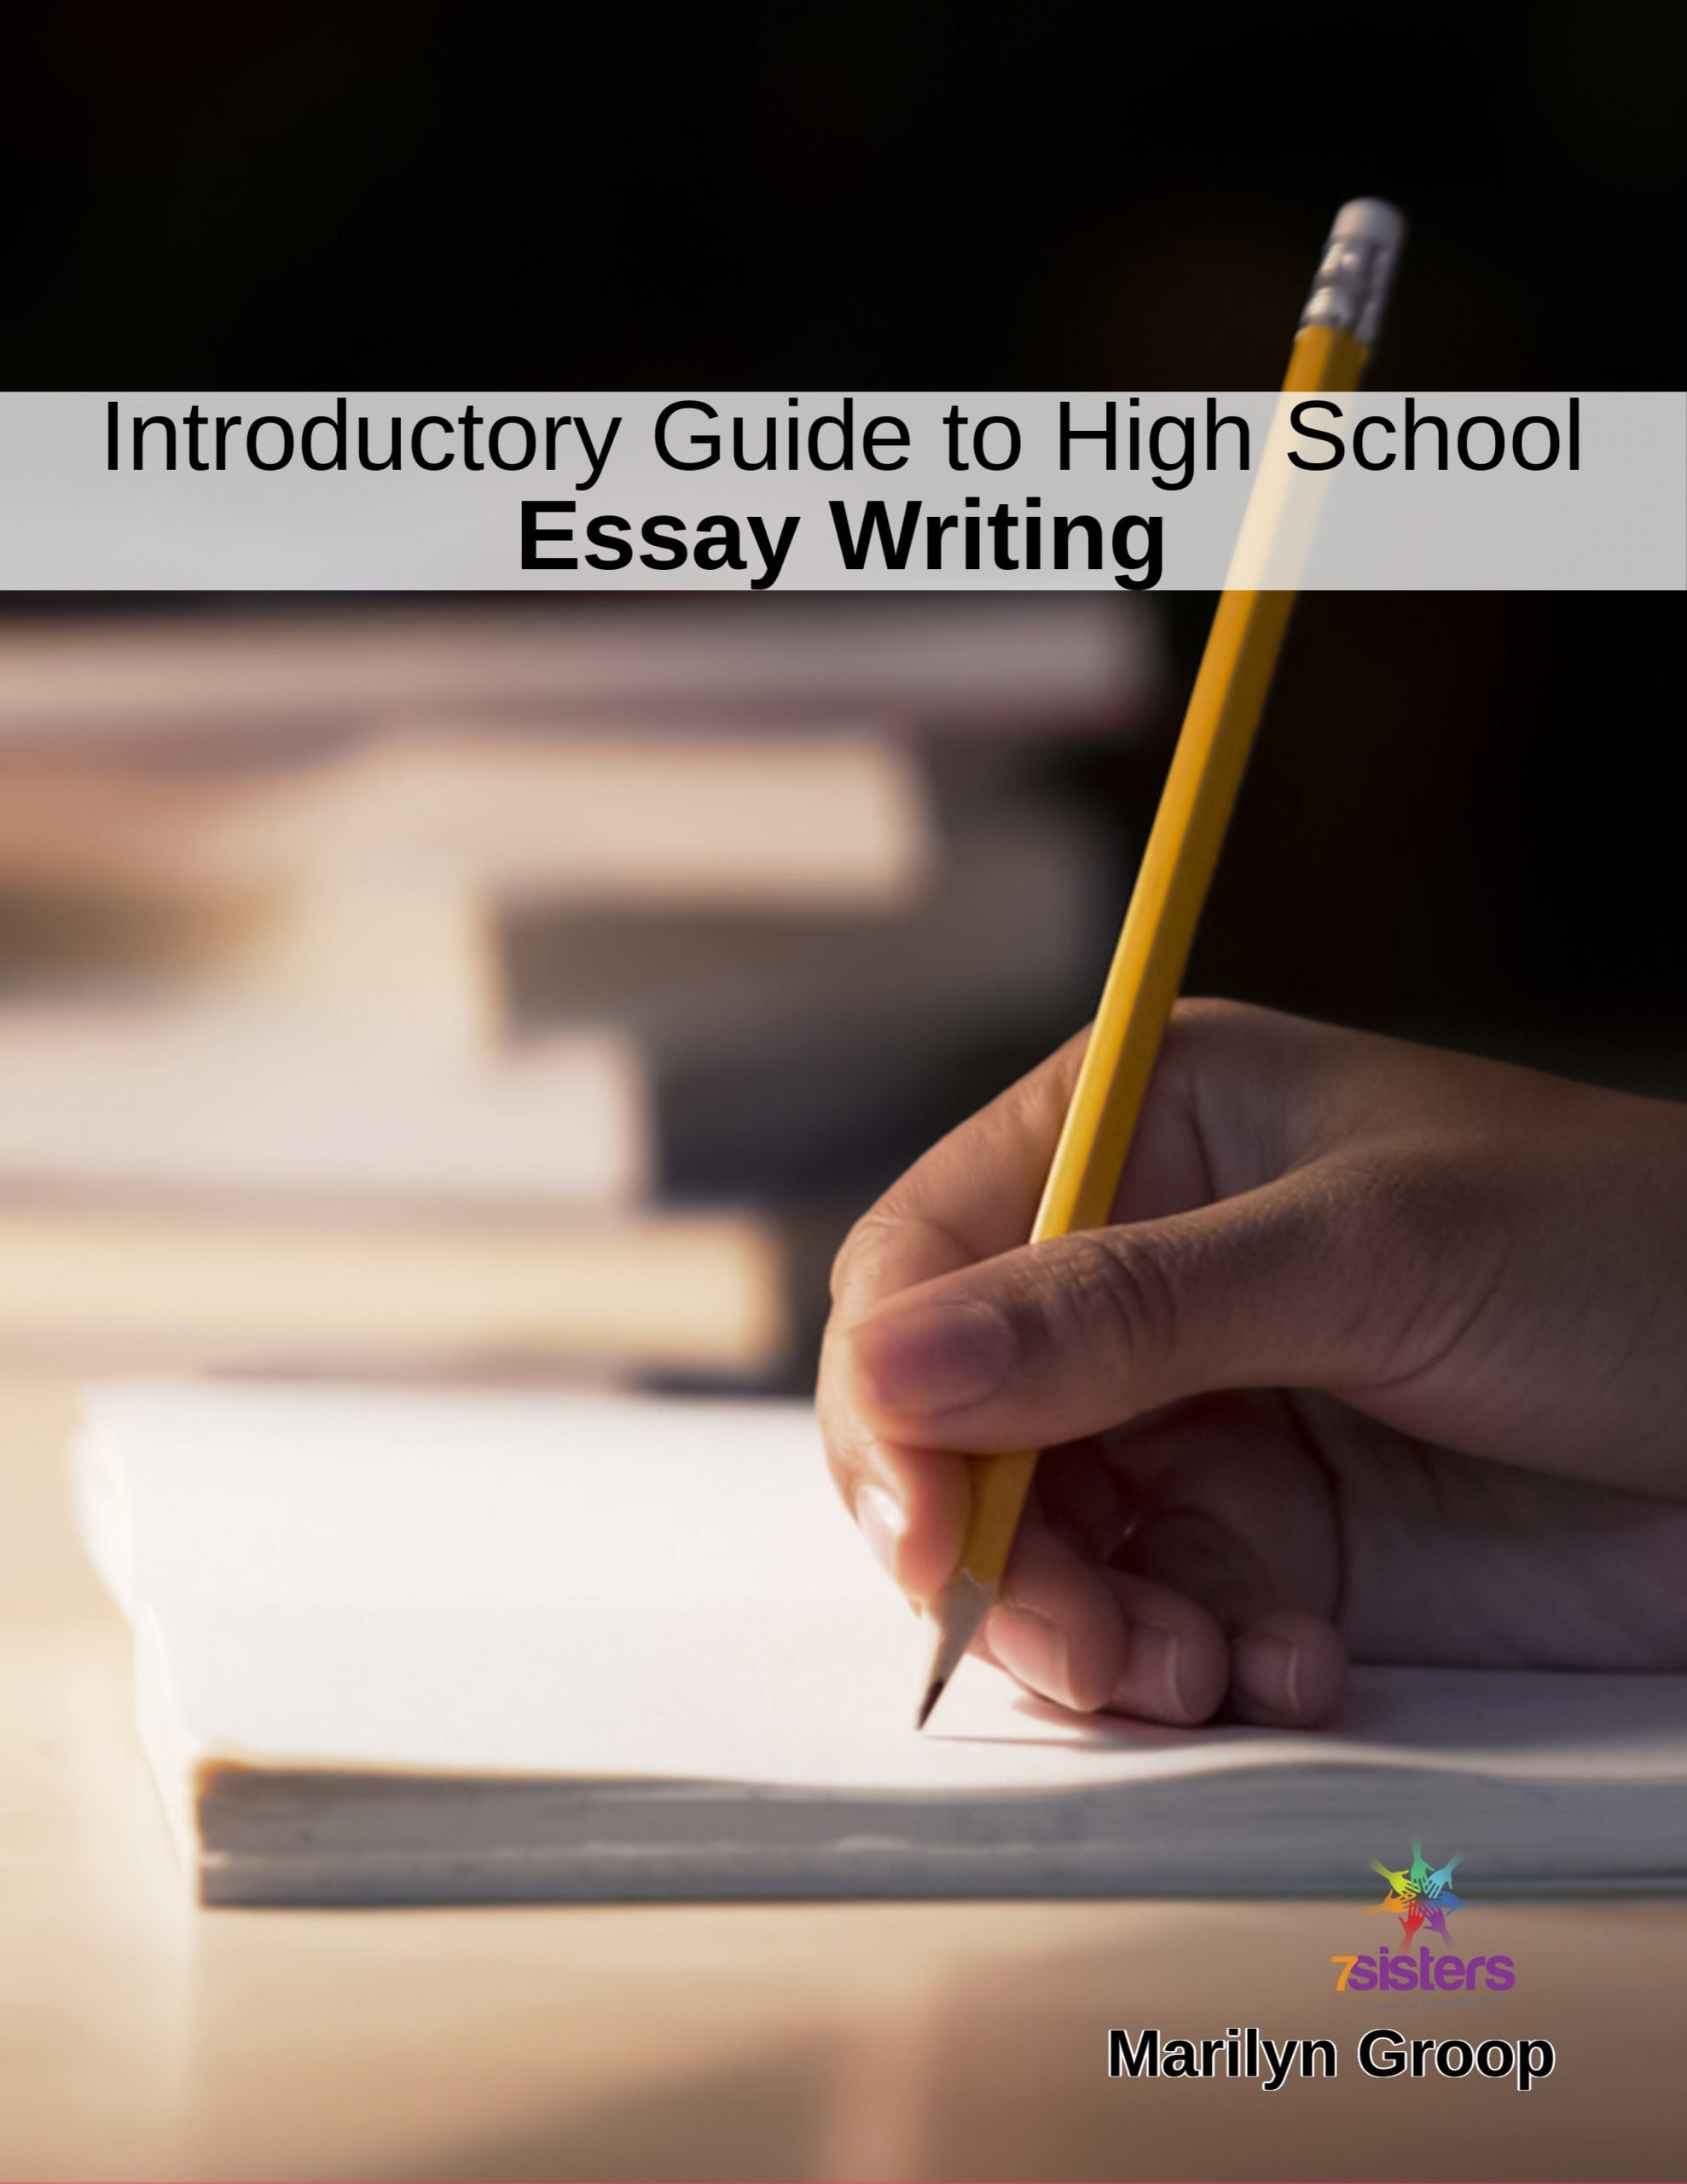 Introductory Guide to High School Essay Writing is a no-busywork, step-by-step, day-by-day writing guide for homeschool high schoolers.